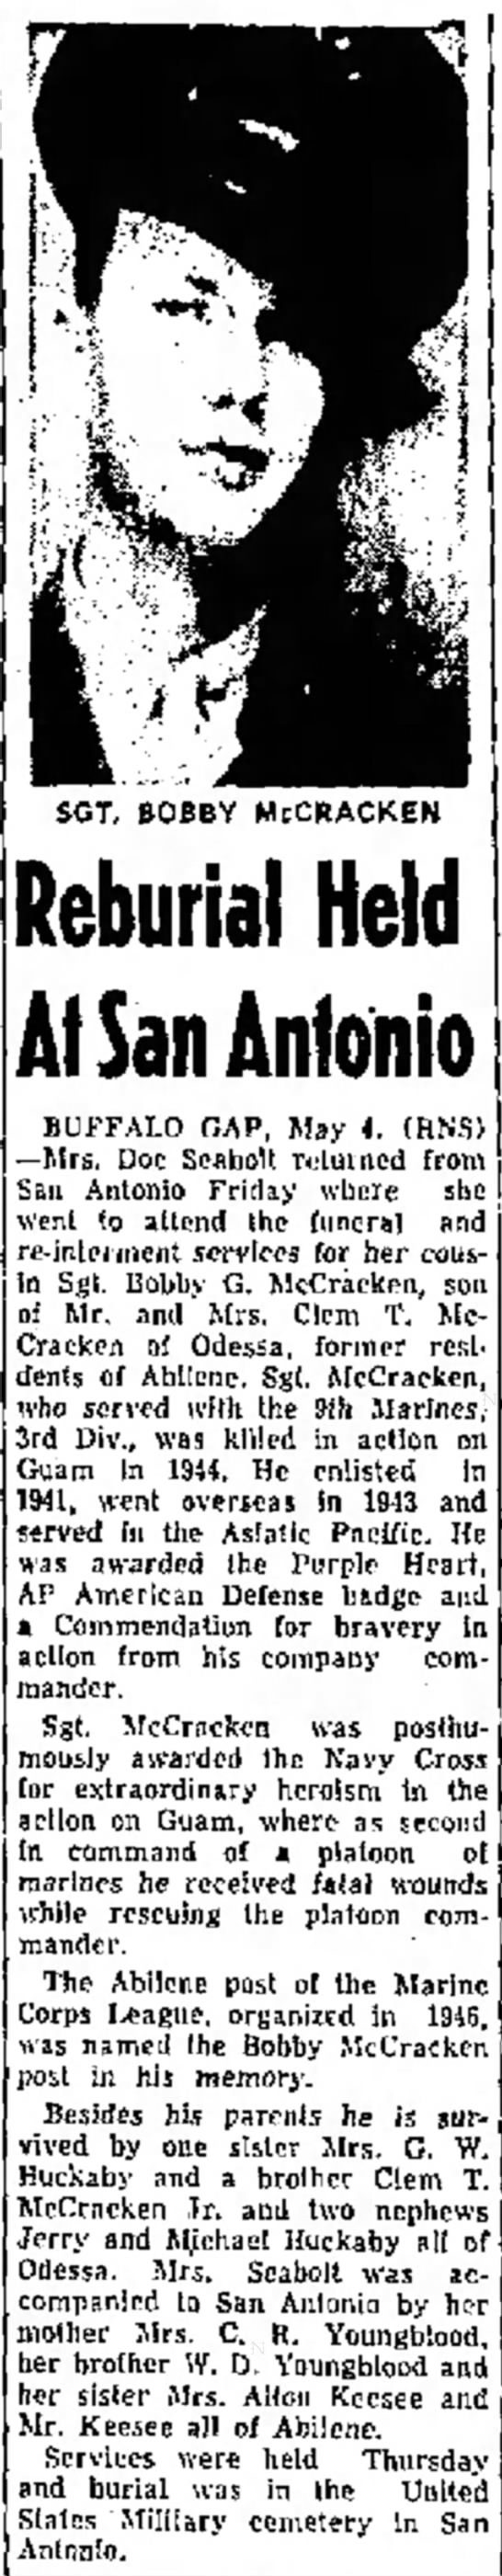 Bobby G. McCracken Abilene Reporter - 5 May 1948. -